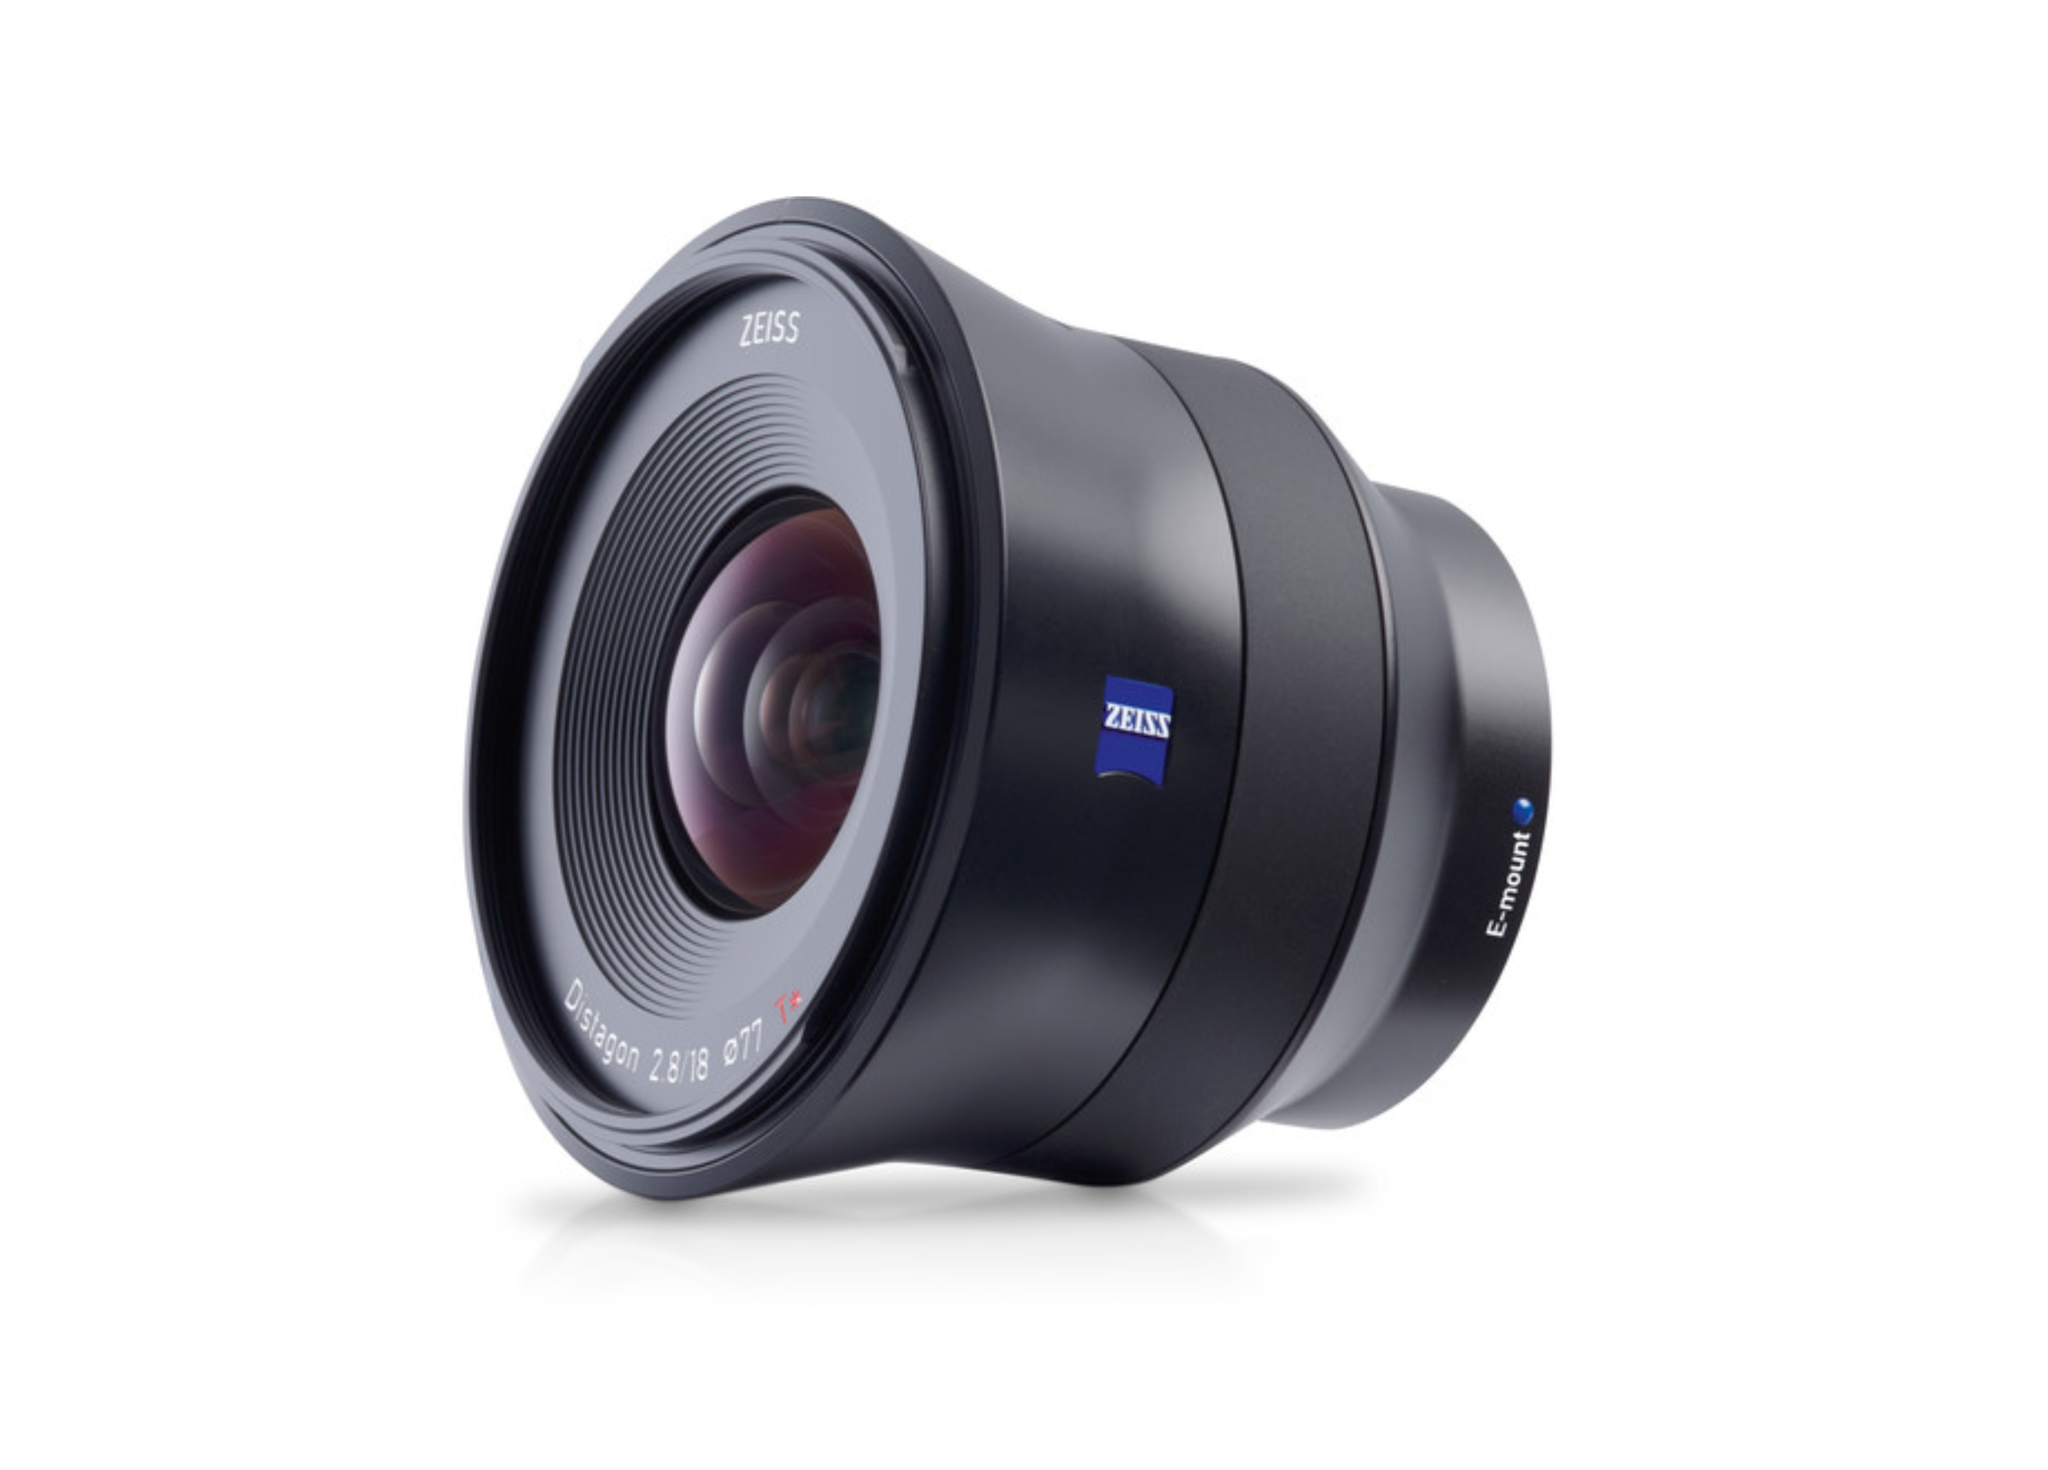 ZEISS Batis 18mm f/2.8 for Sony E